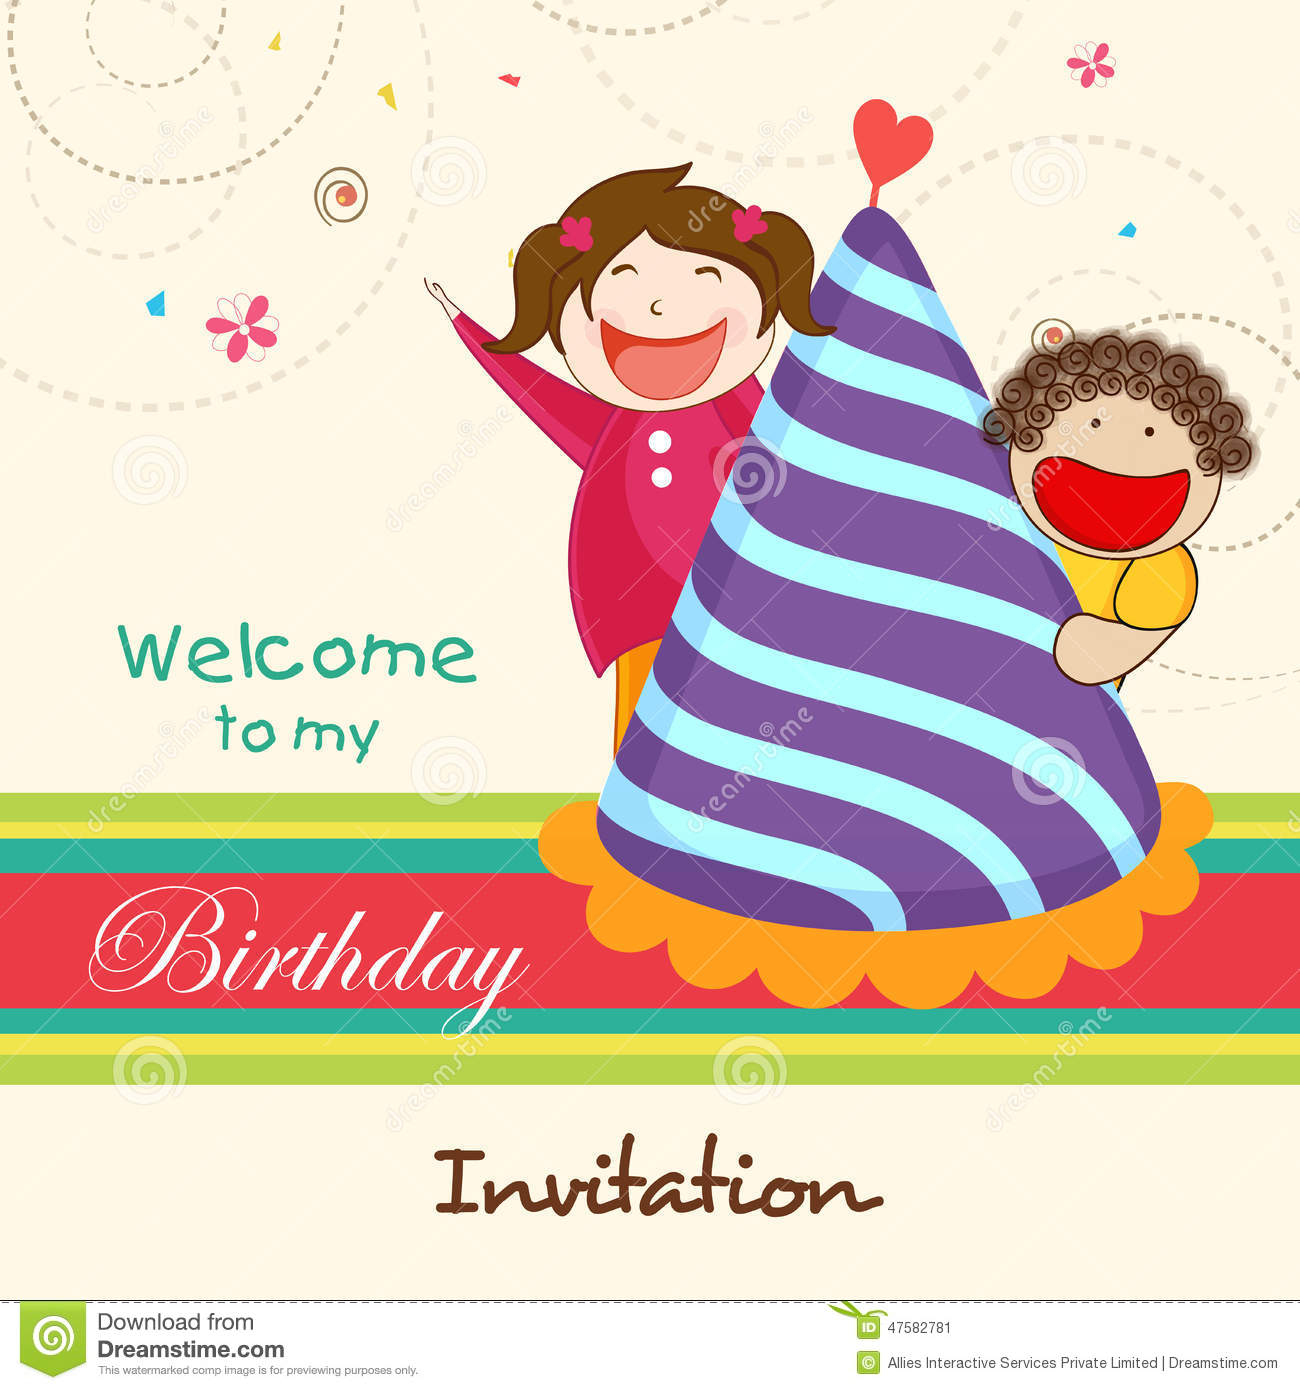 Birthday invitation cards for kids kubreforic birthday invitation filmwisefo